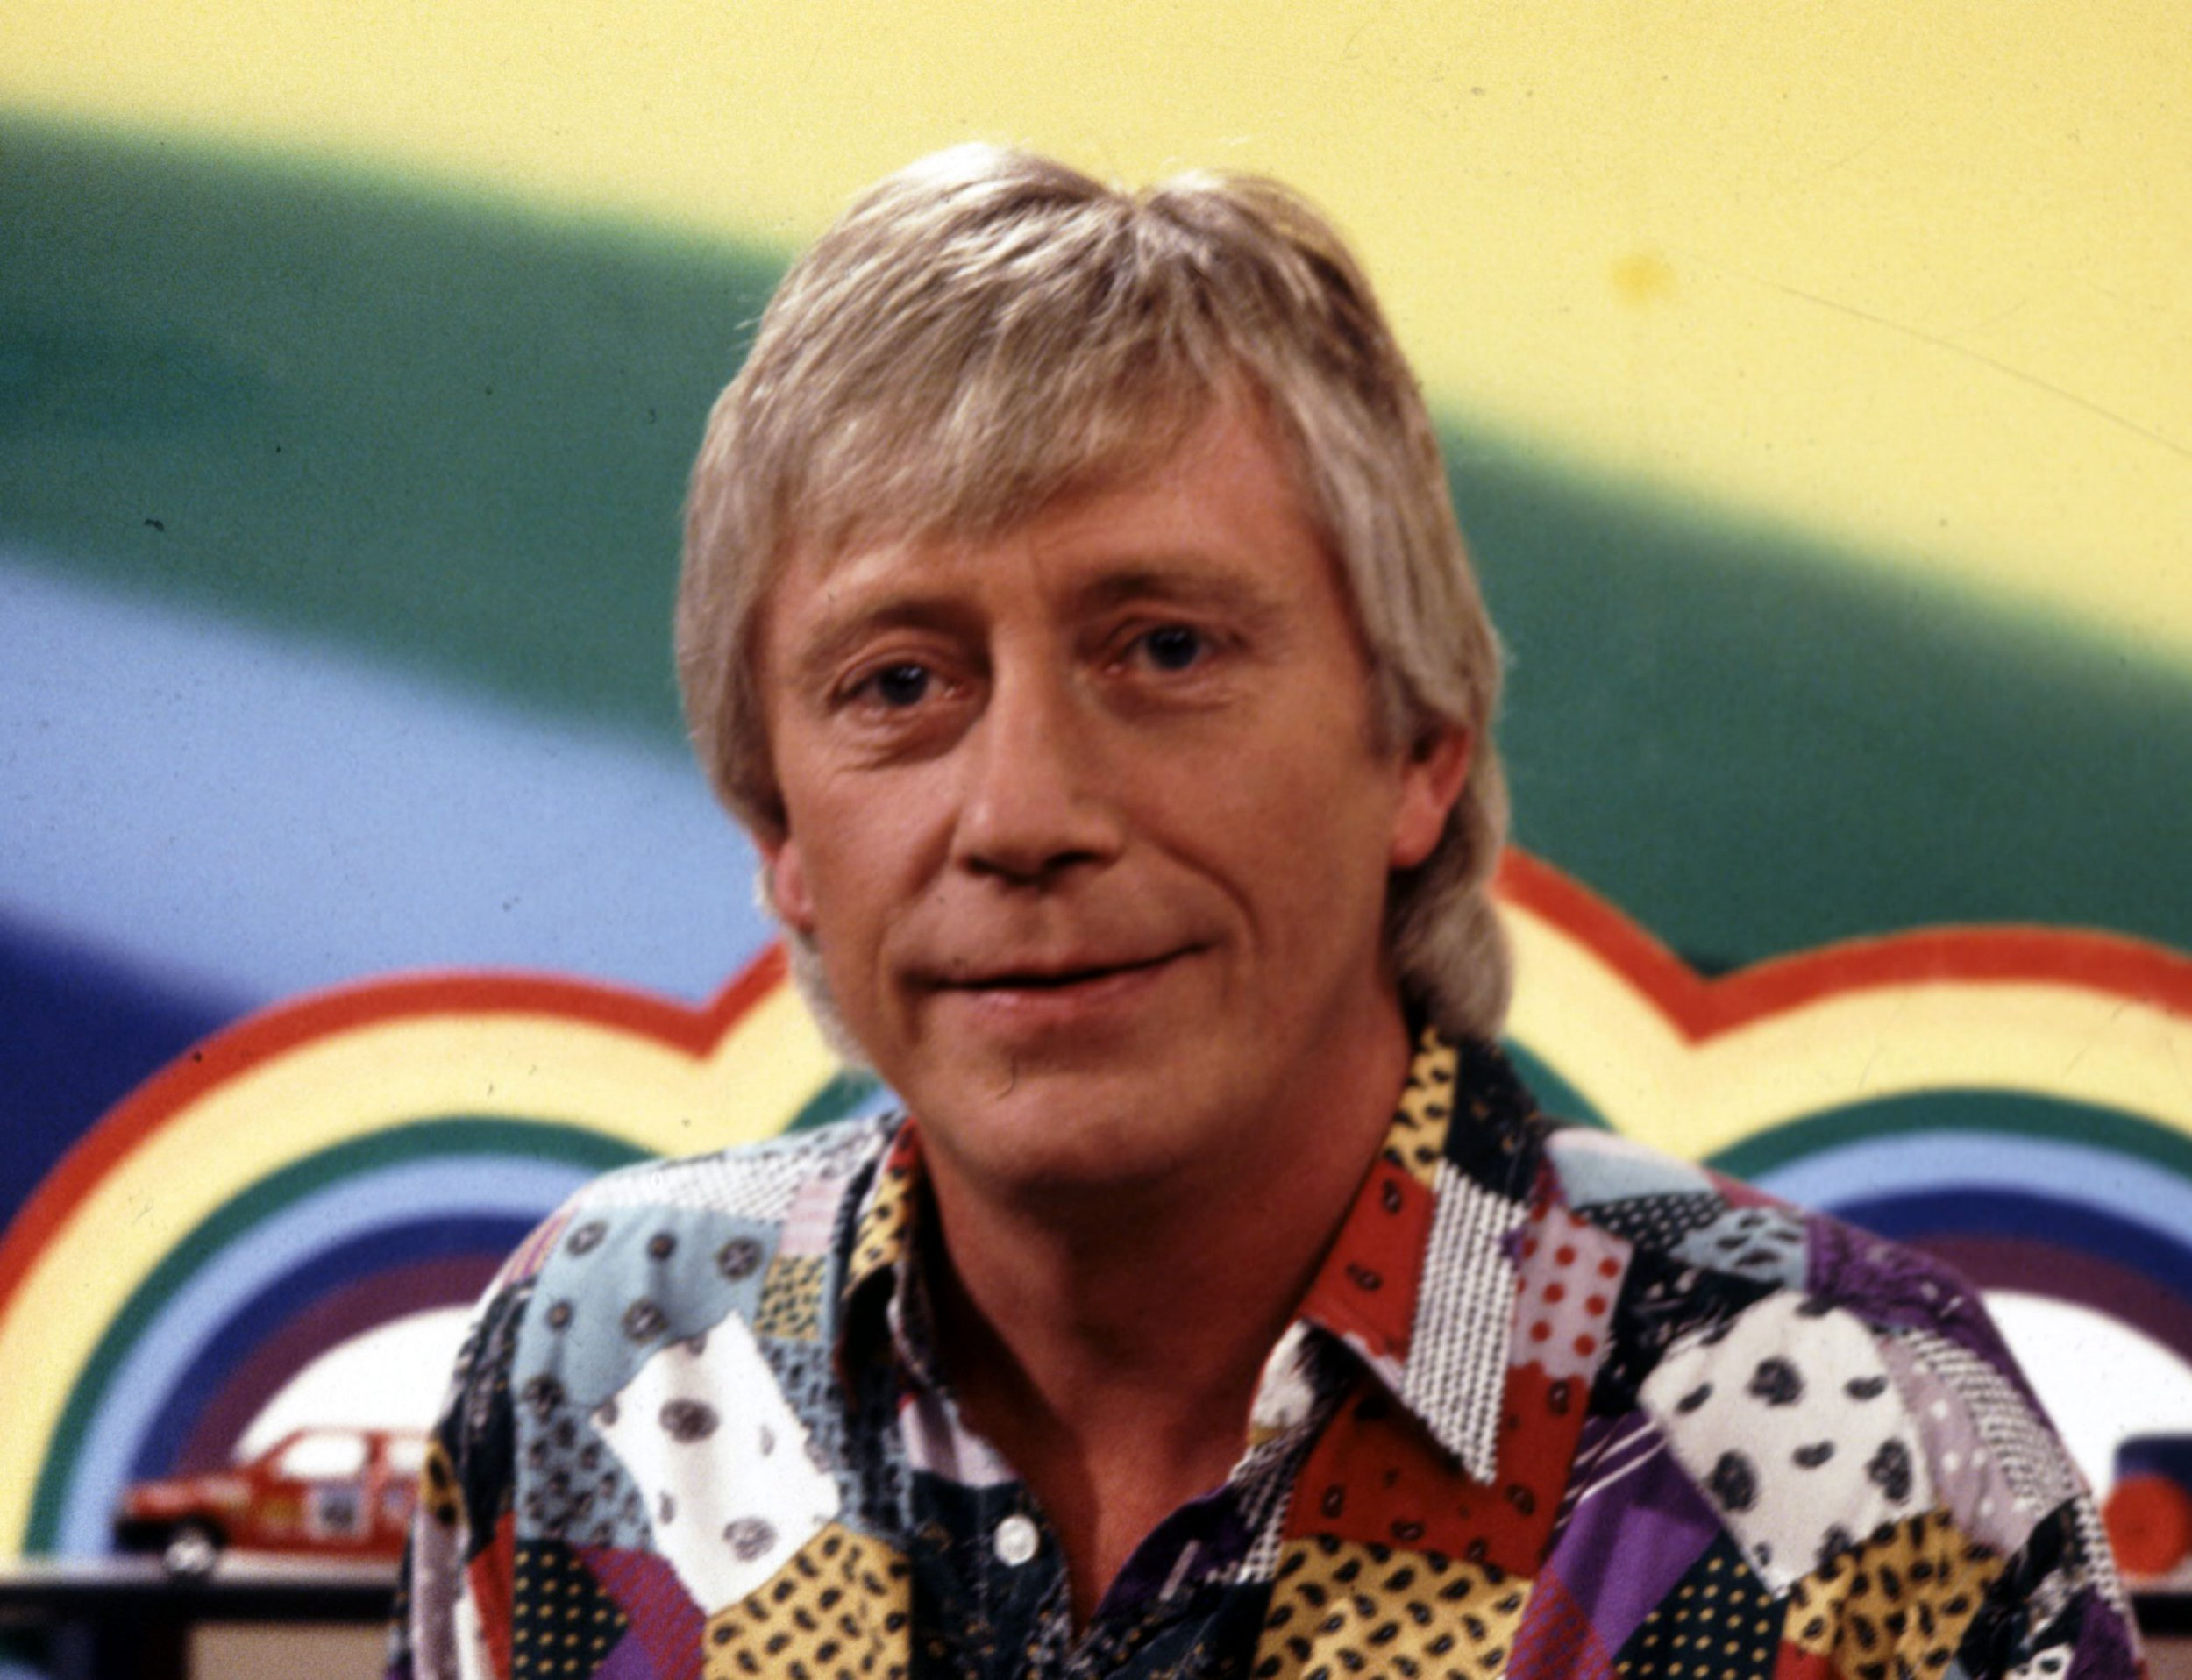 Editorial use only Mandatory Credit: Photo by FremantleMedia Ltd/REX/Shutterstock (839314fo) 'Rainbow' - Geoffrey Hayes Thames TV Archive